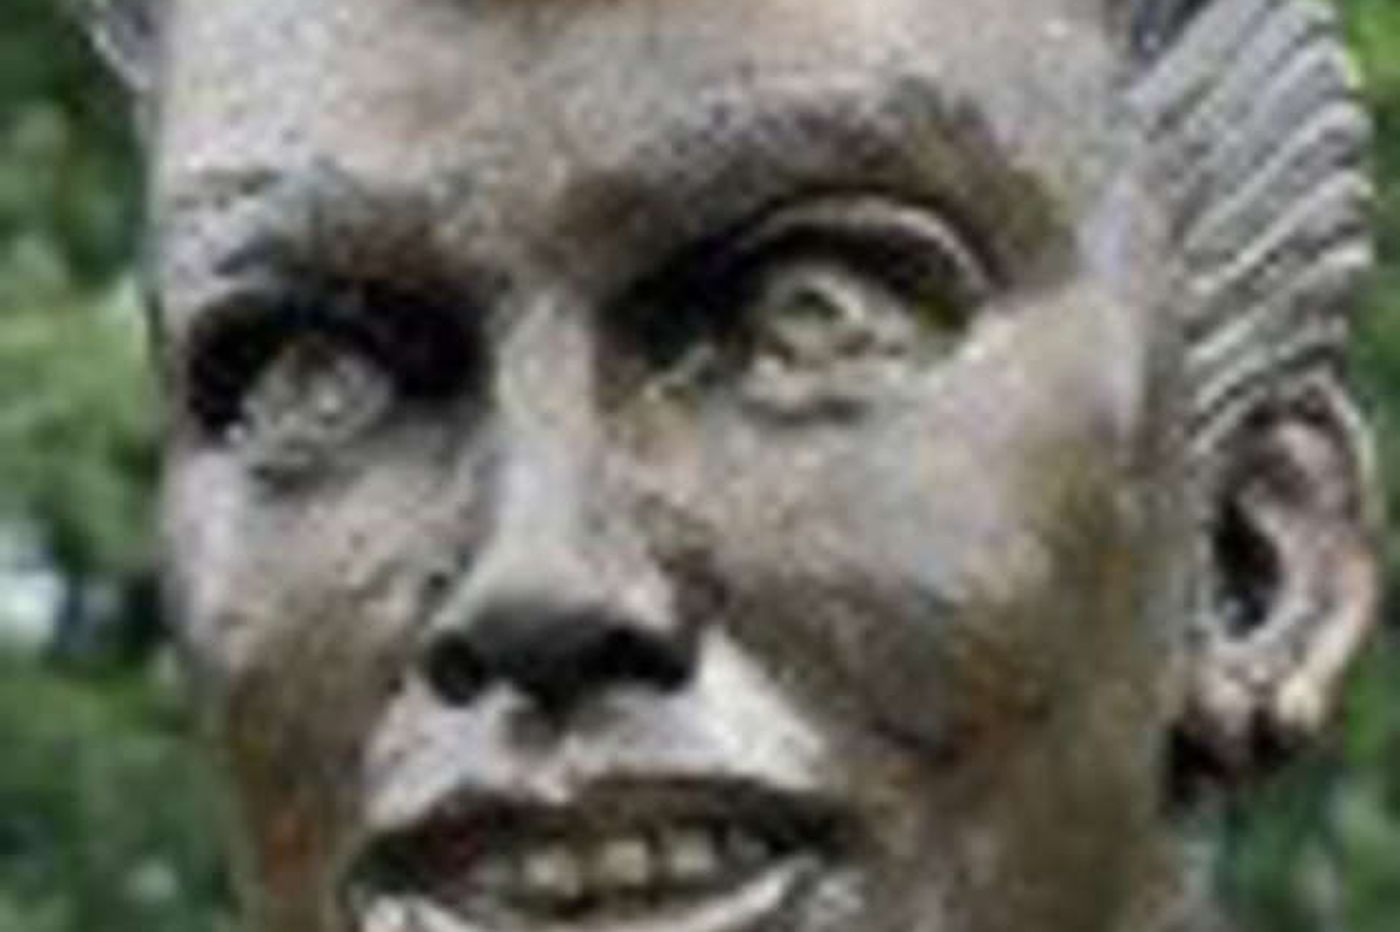 Sideshow: They don't love Lucy statue